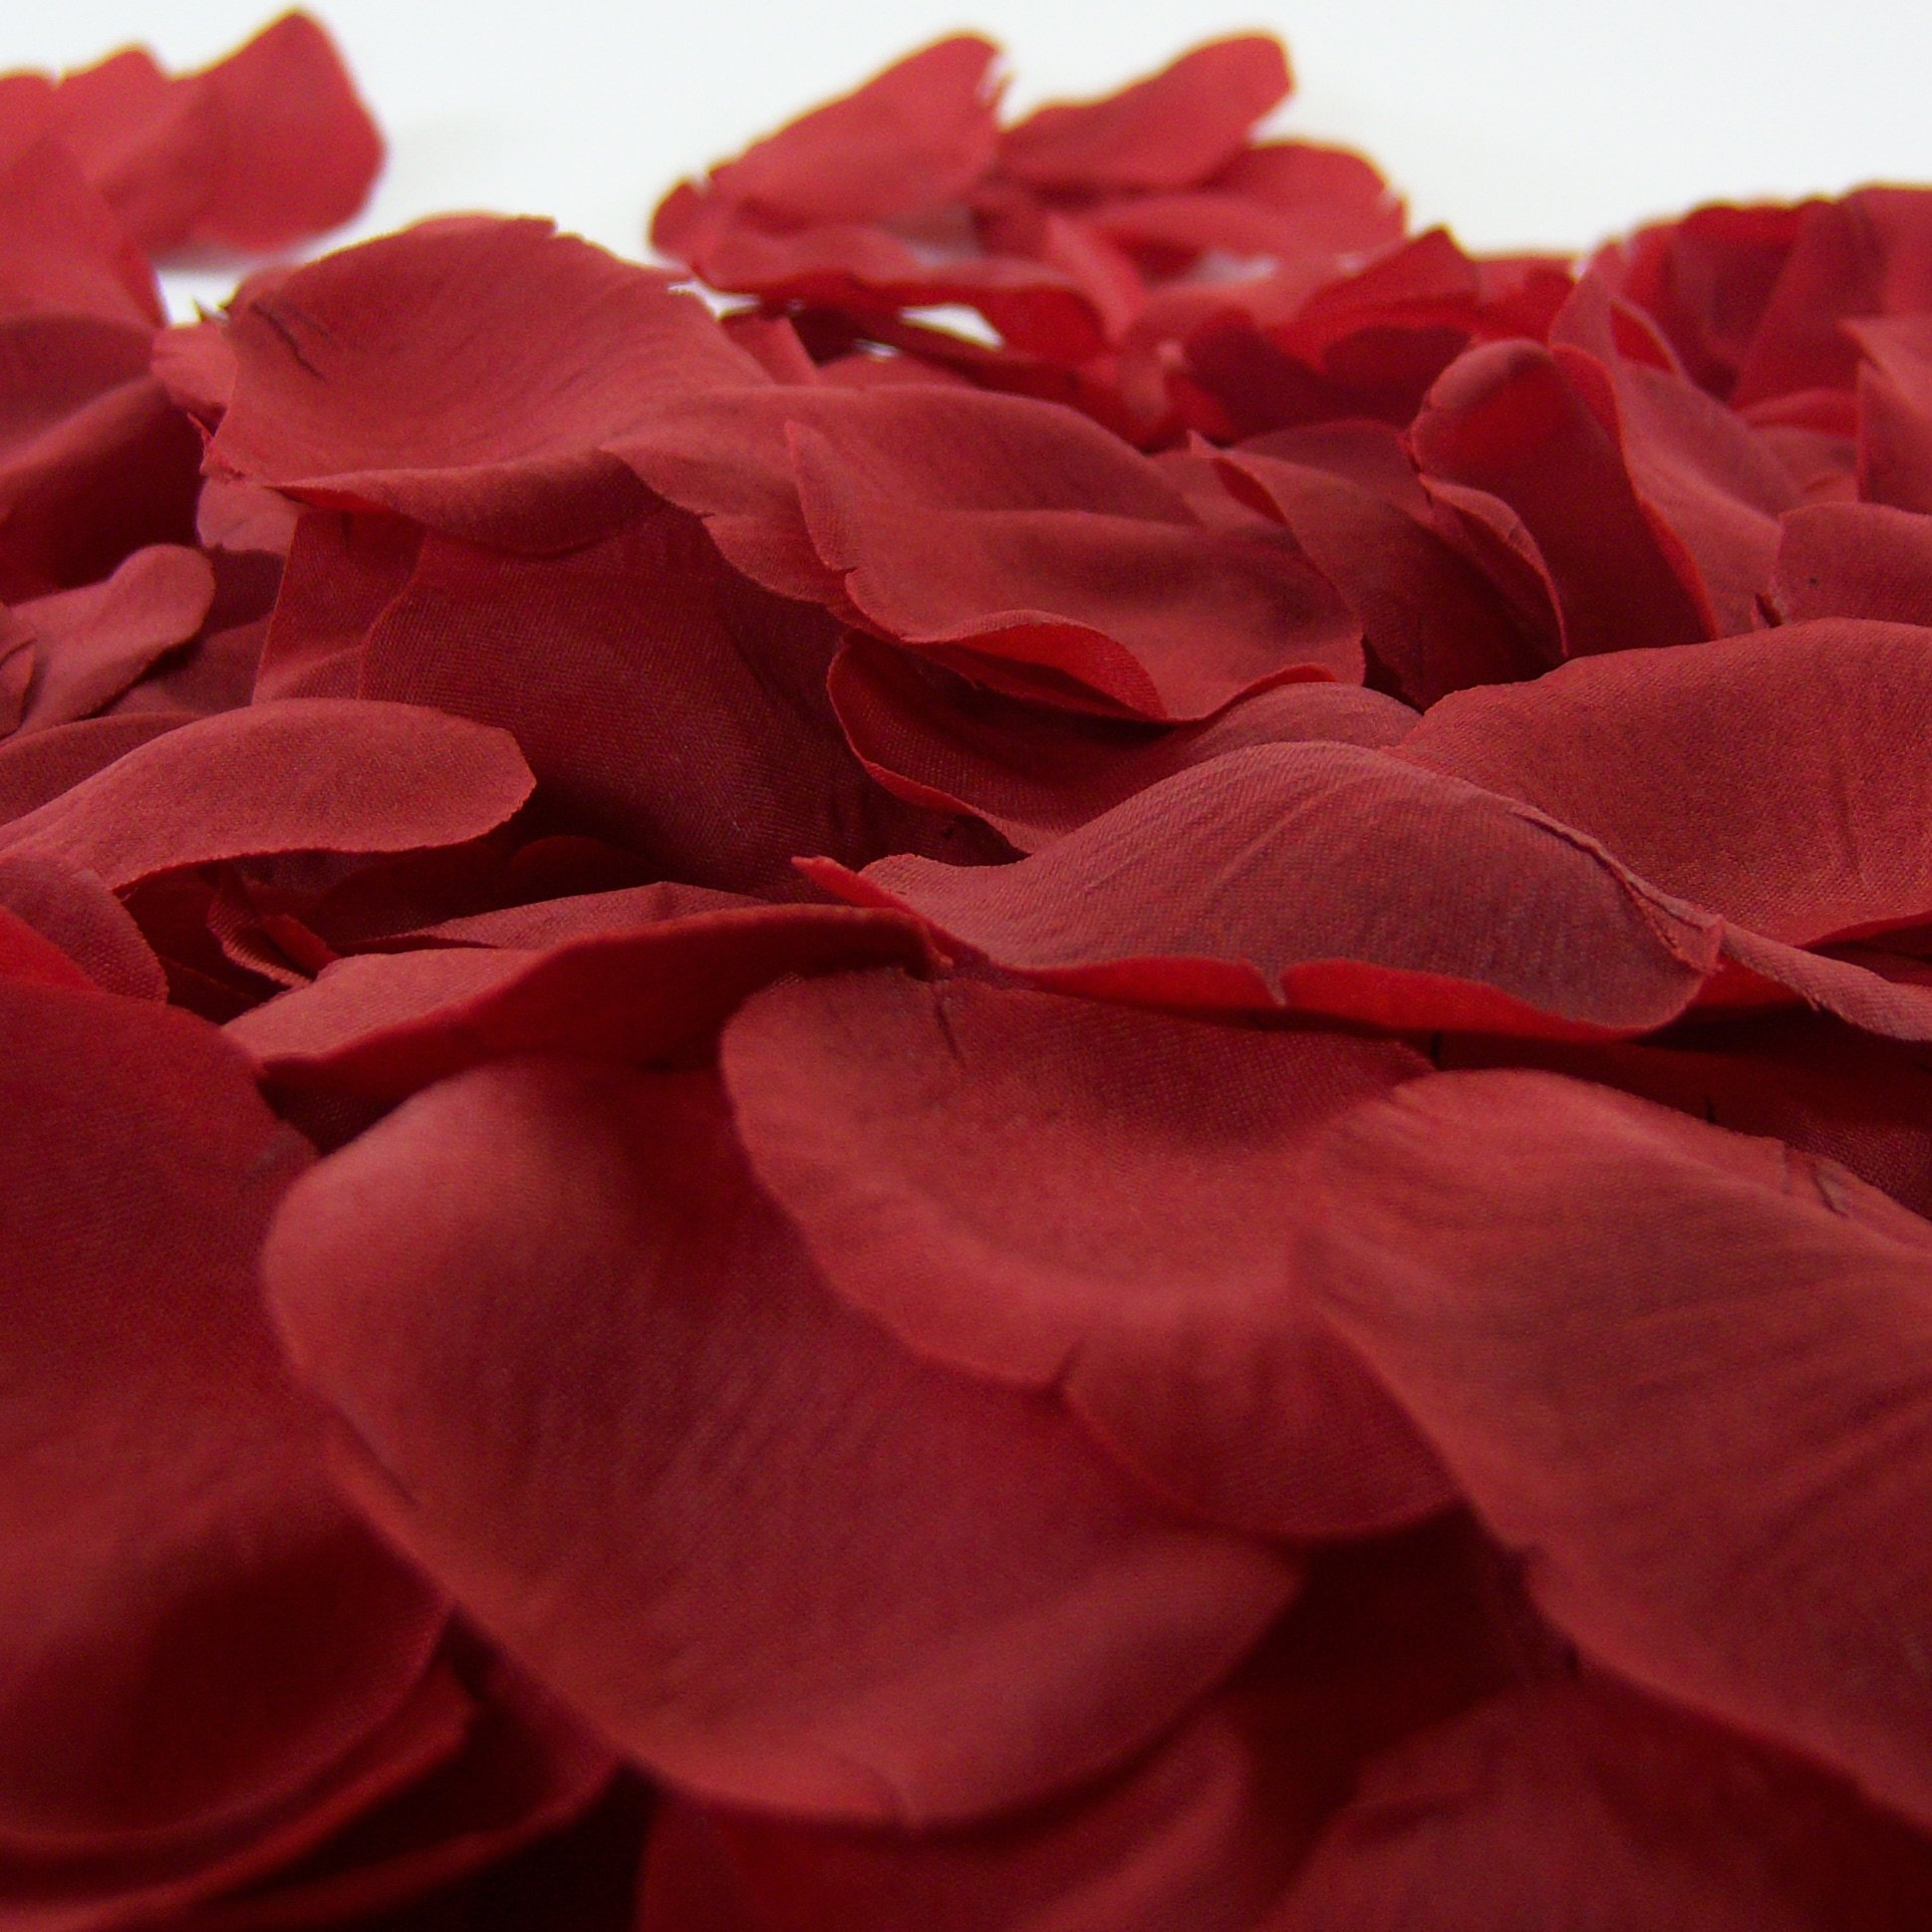 Wedding Table Silk Rose Petals red silk rose petals 200 cp ebay with divine style and your wedding aisle a traditional wash of romantic colour these are the perfect match for day